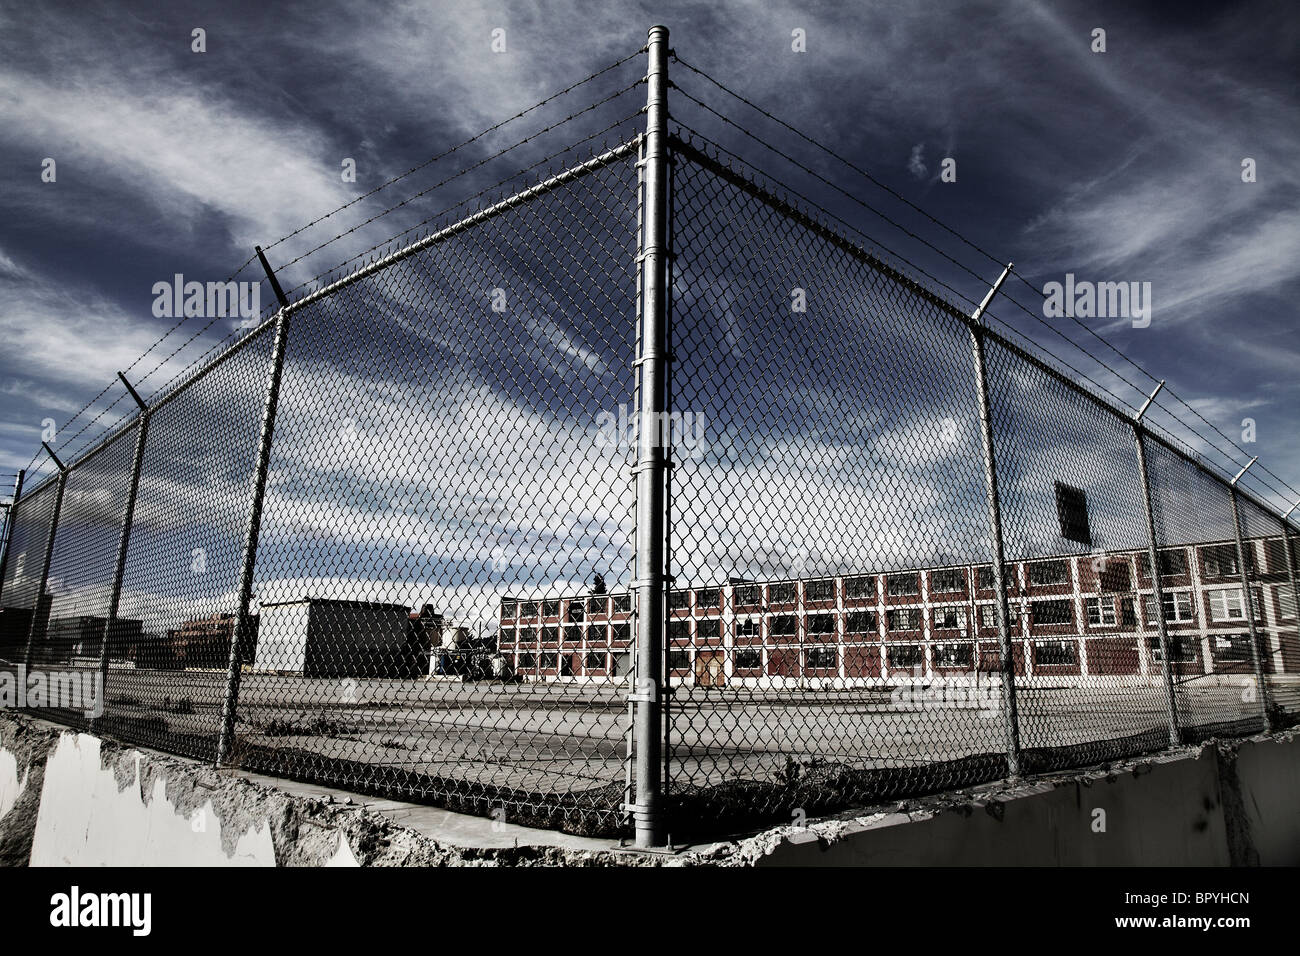 A fence in front of a factory building with a dramatic sky. Stock Photo